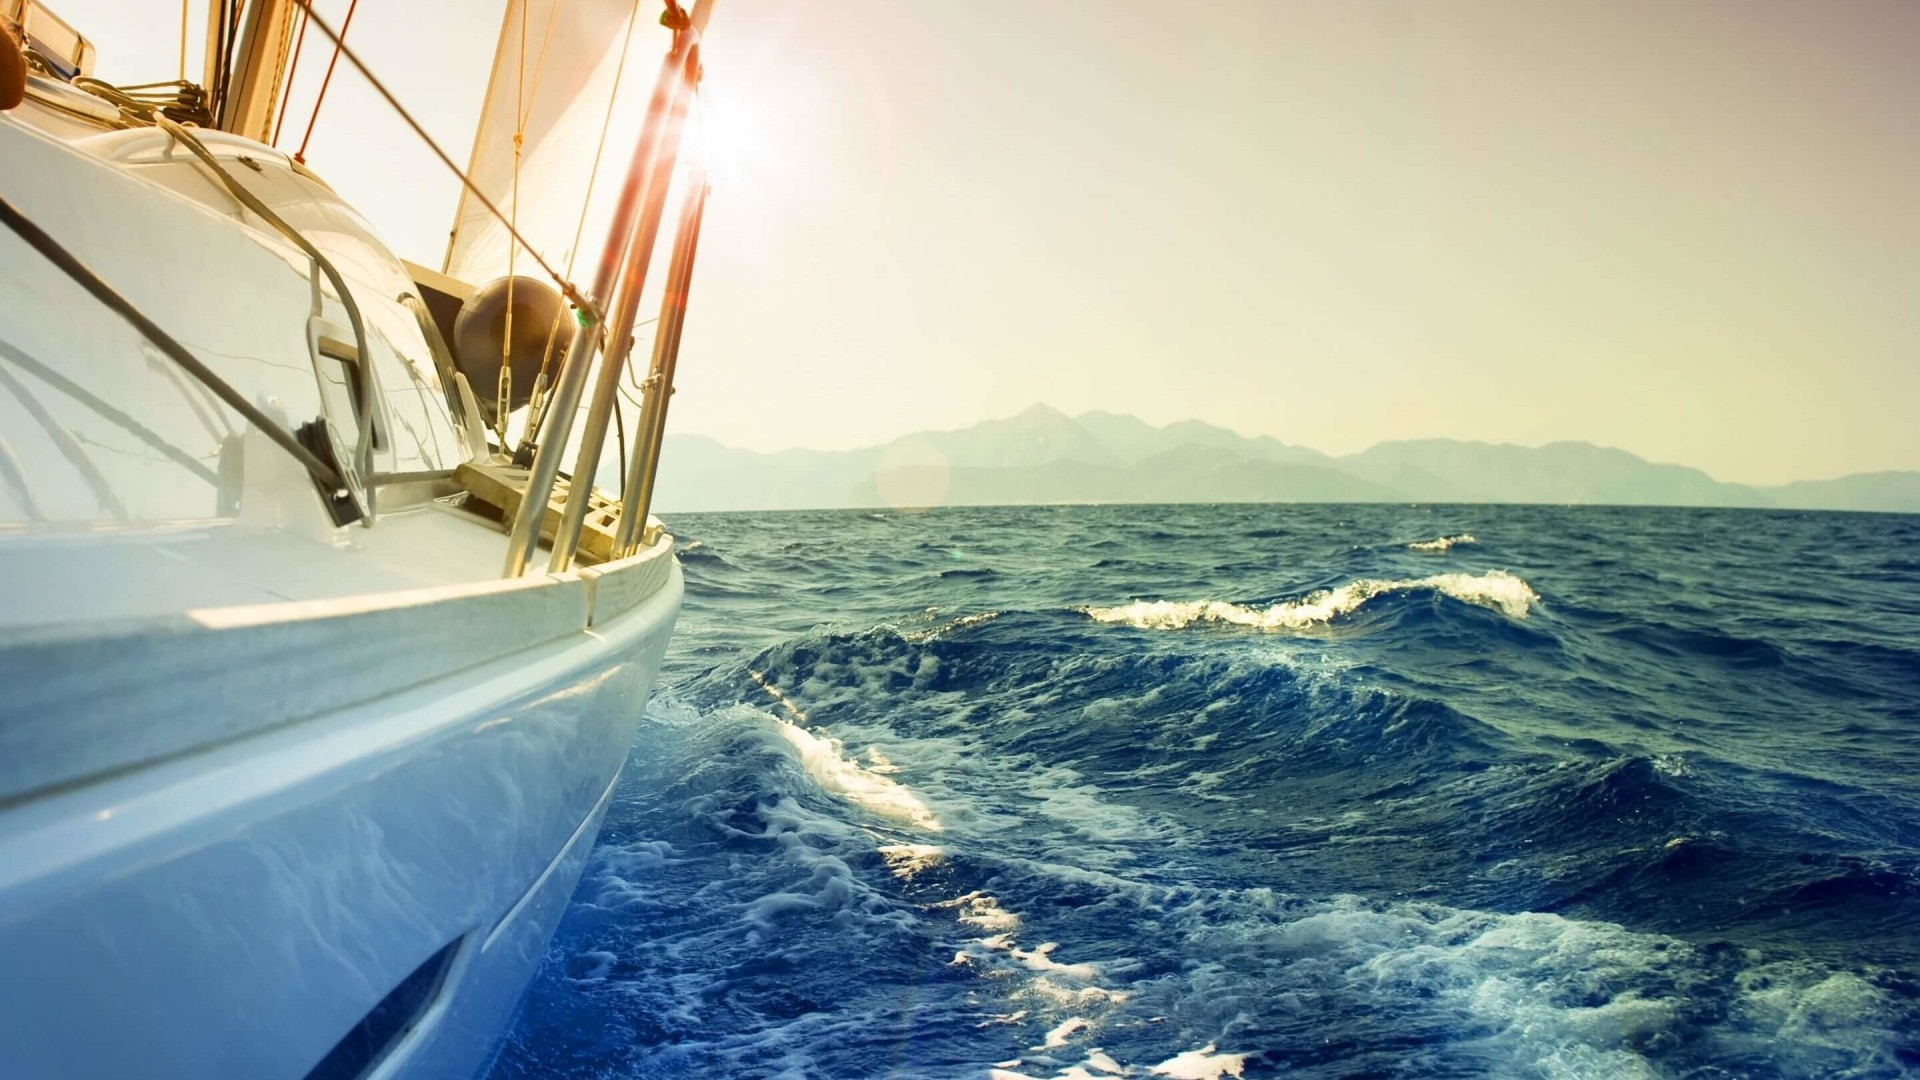 Yacht Sailing Downwind at Sunset Wallpaper for Desktop 1920x1080